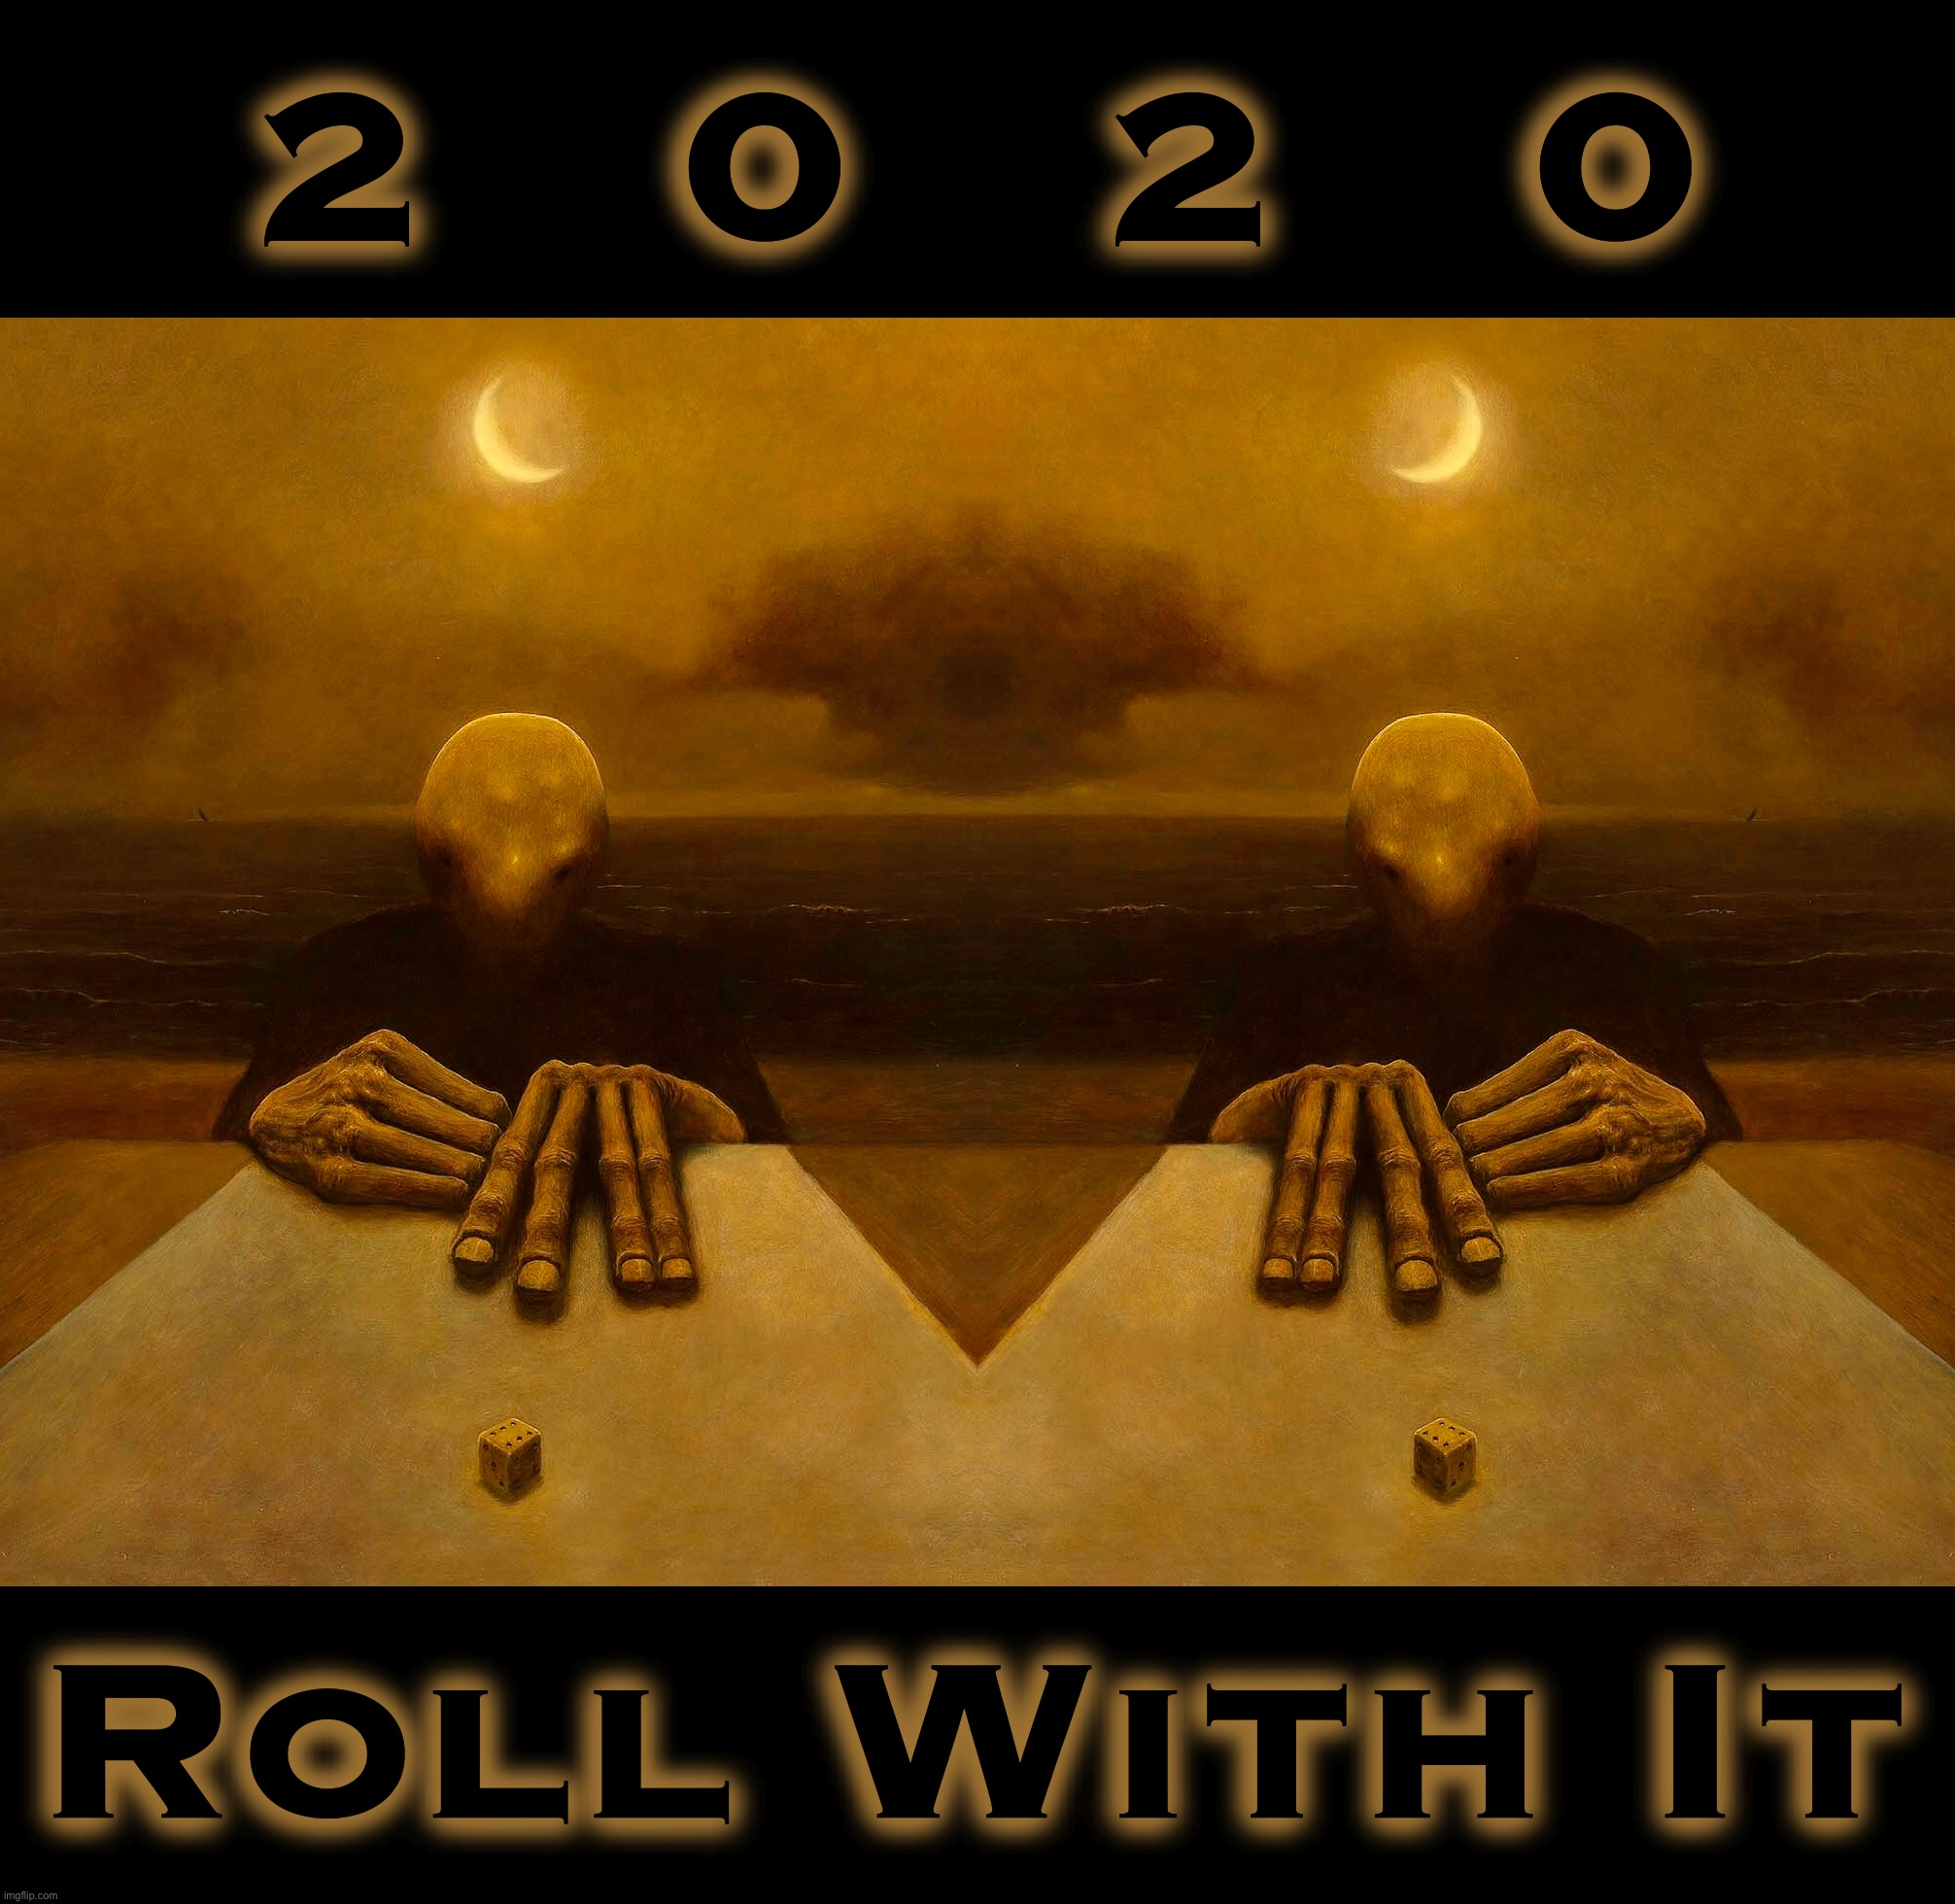 Dicey |  2   0   2   0; Roll With It | image tagged in 2020,memes,king dice,end of the world,covid-19,captain trumps | made w/ Imgflip meme maker